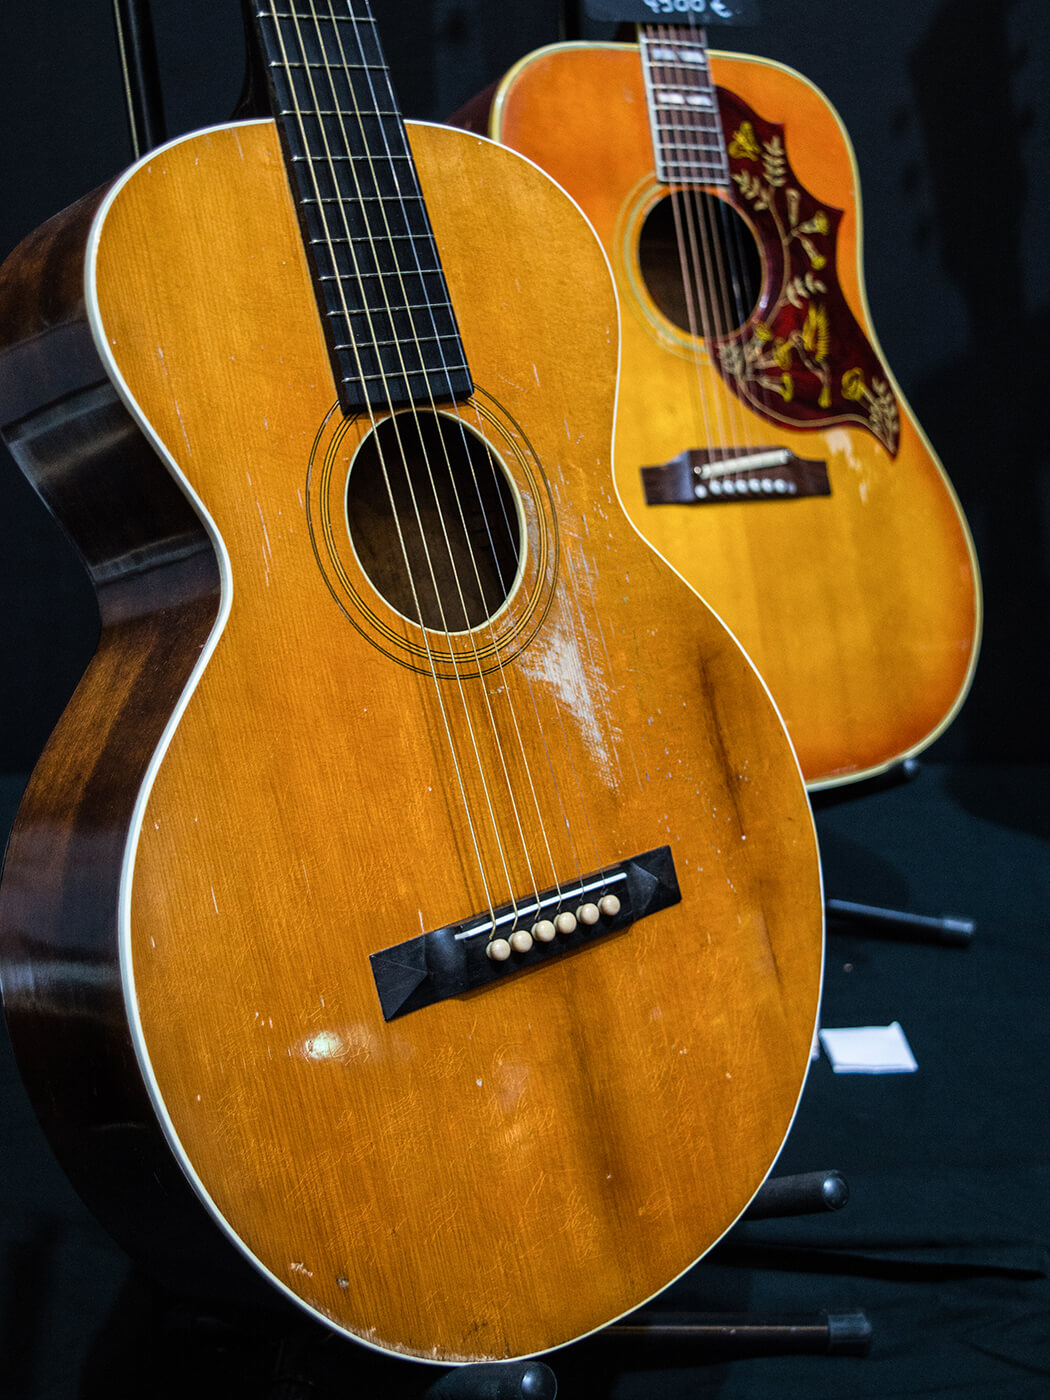 Gibson Acoustic and 1926 Hummingbird